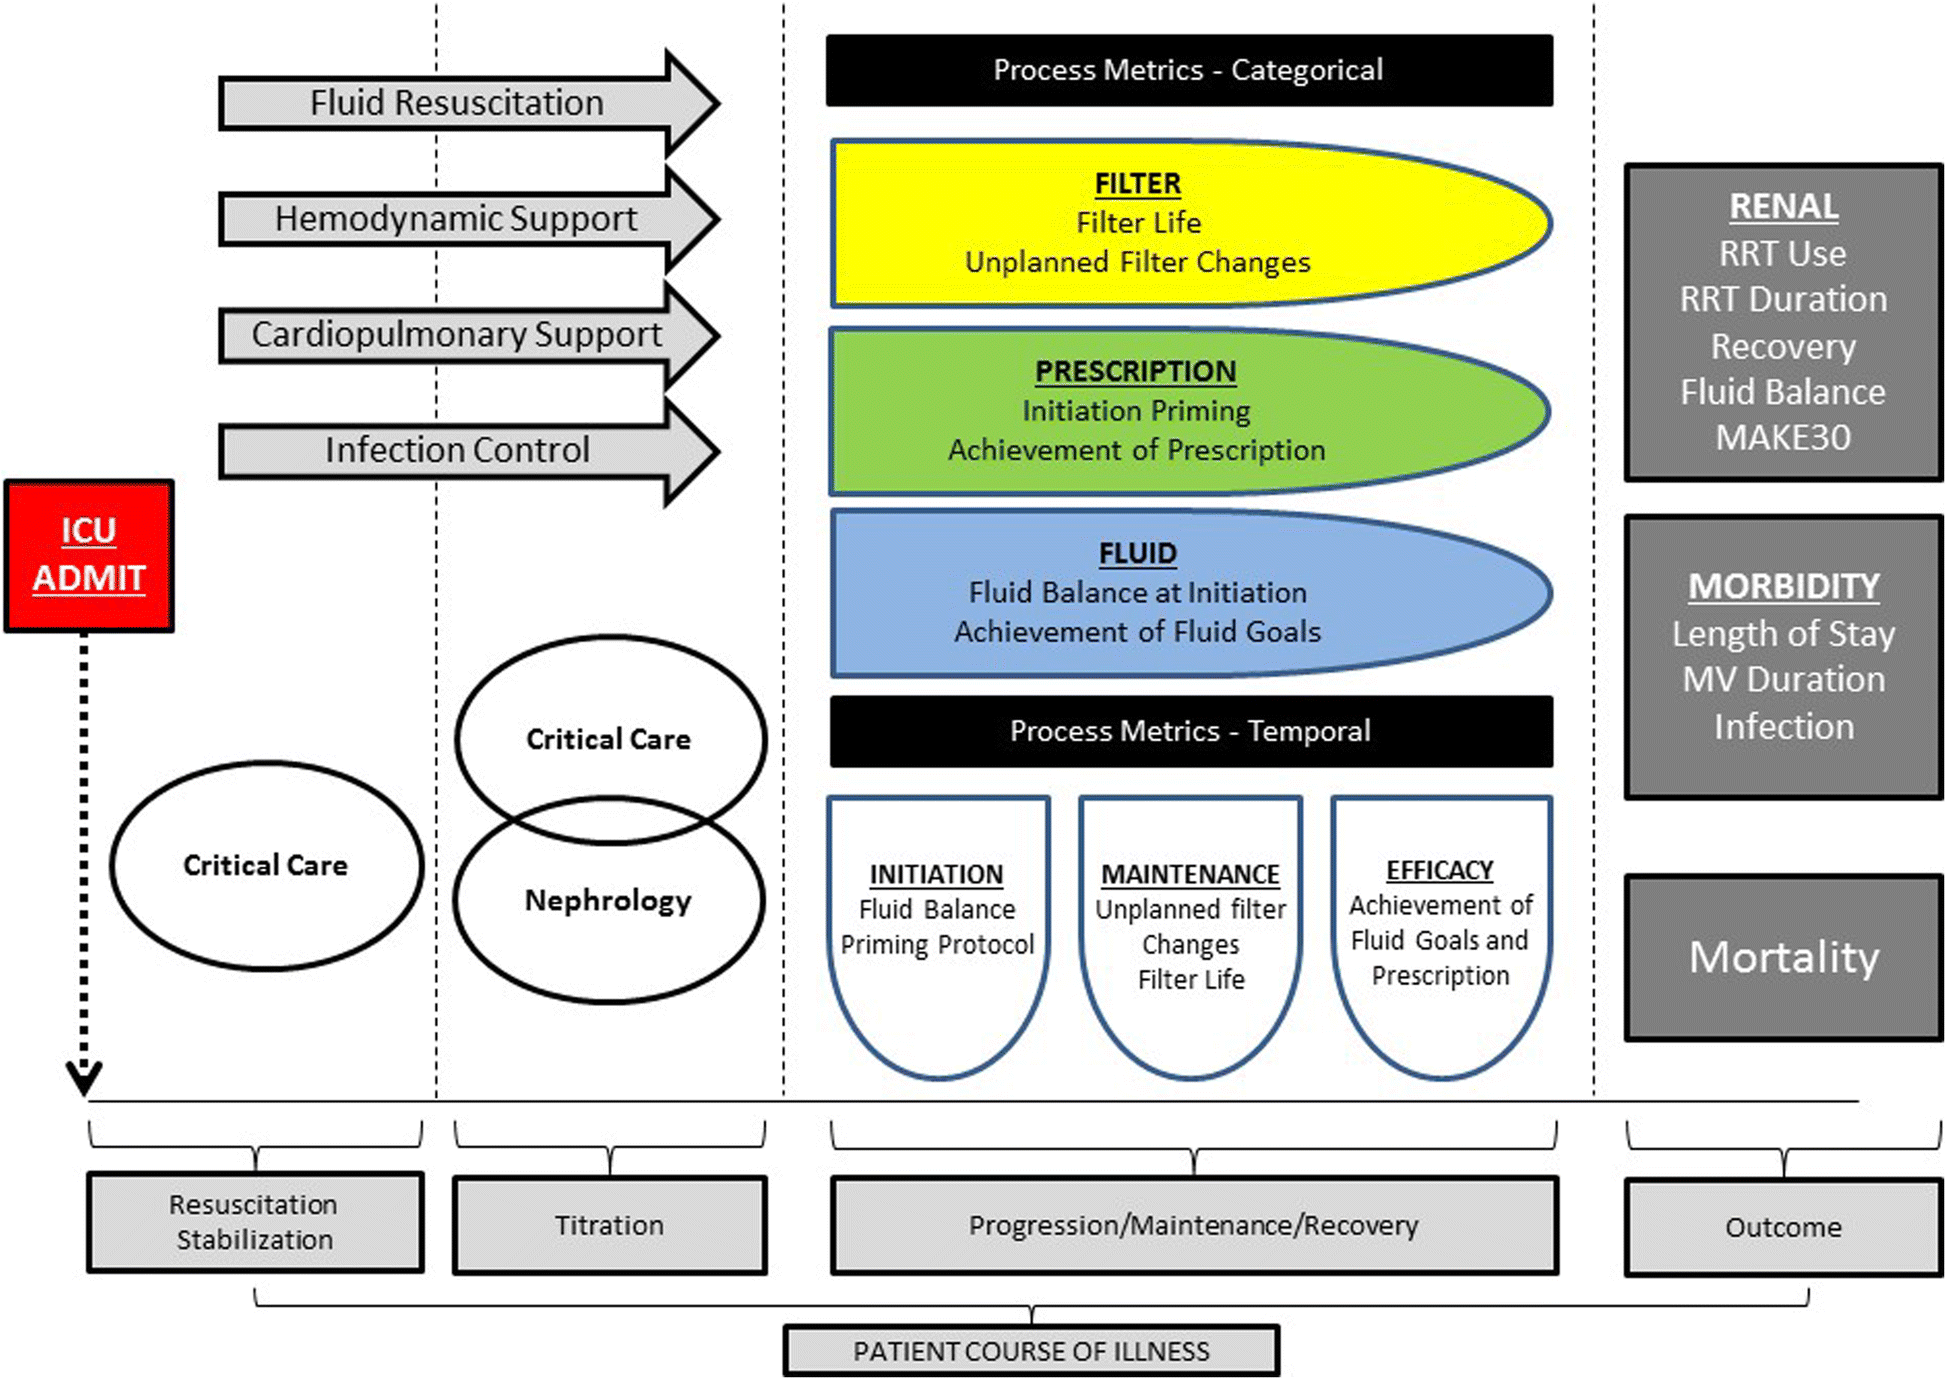 Process based quality improvement using a continuous renal